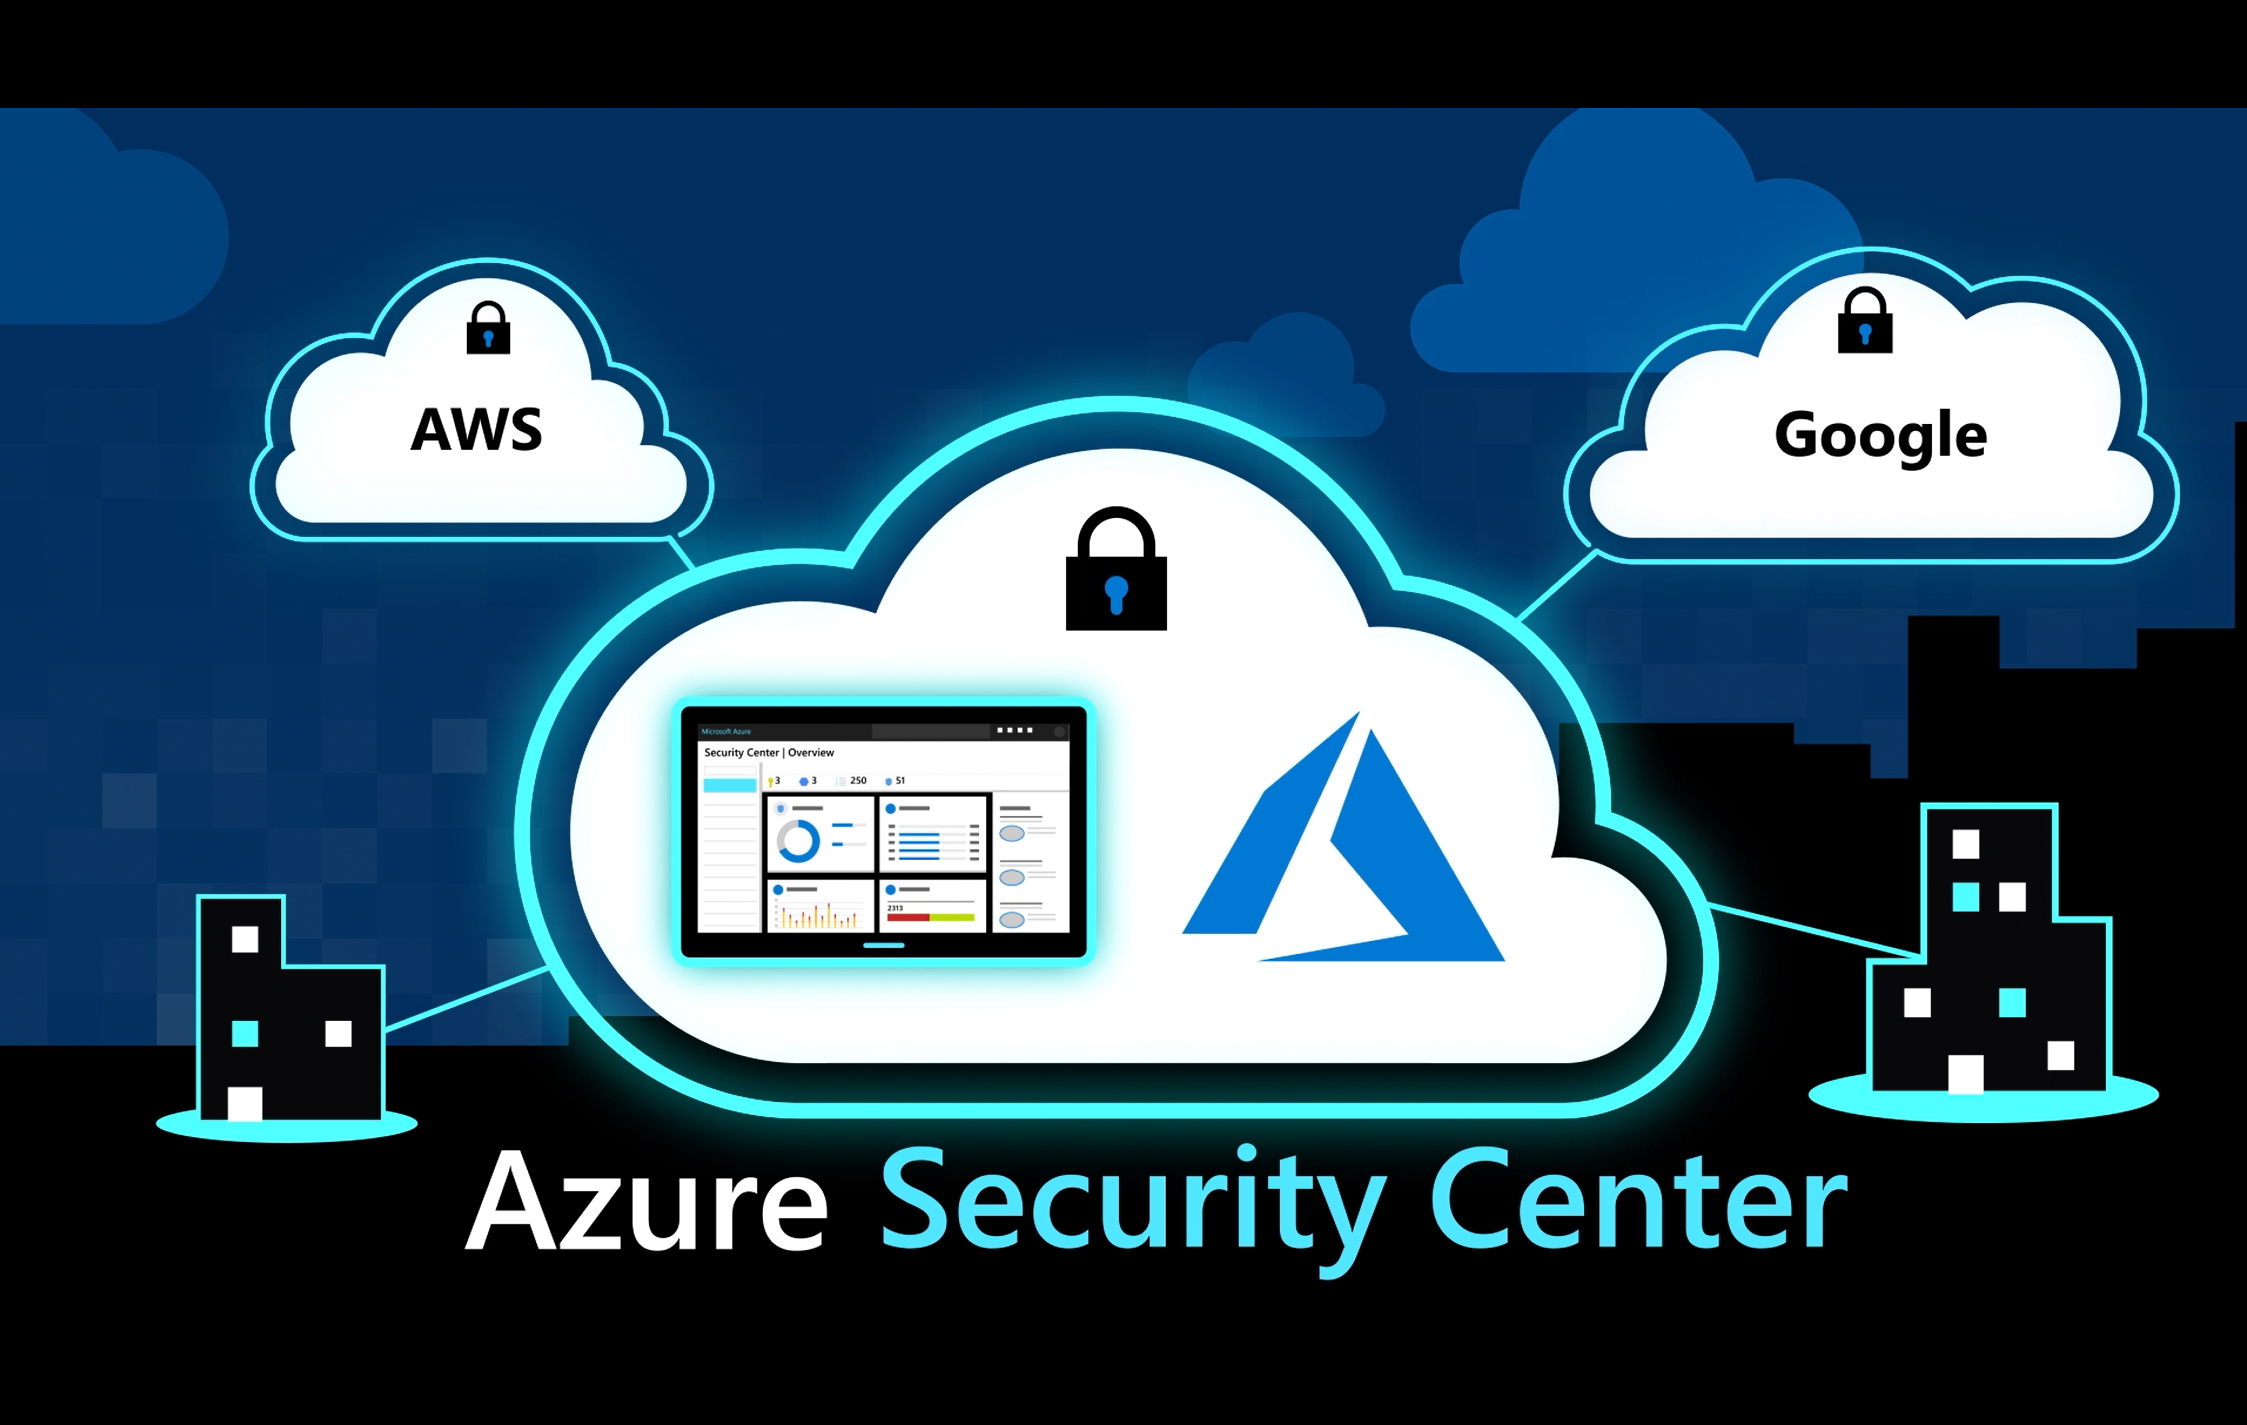 Azure Security Center Animation Video